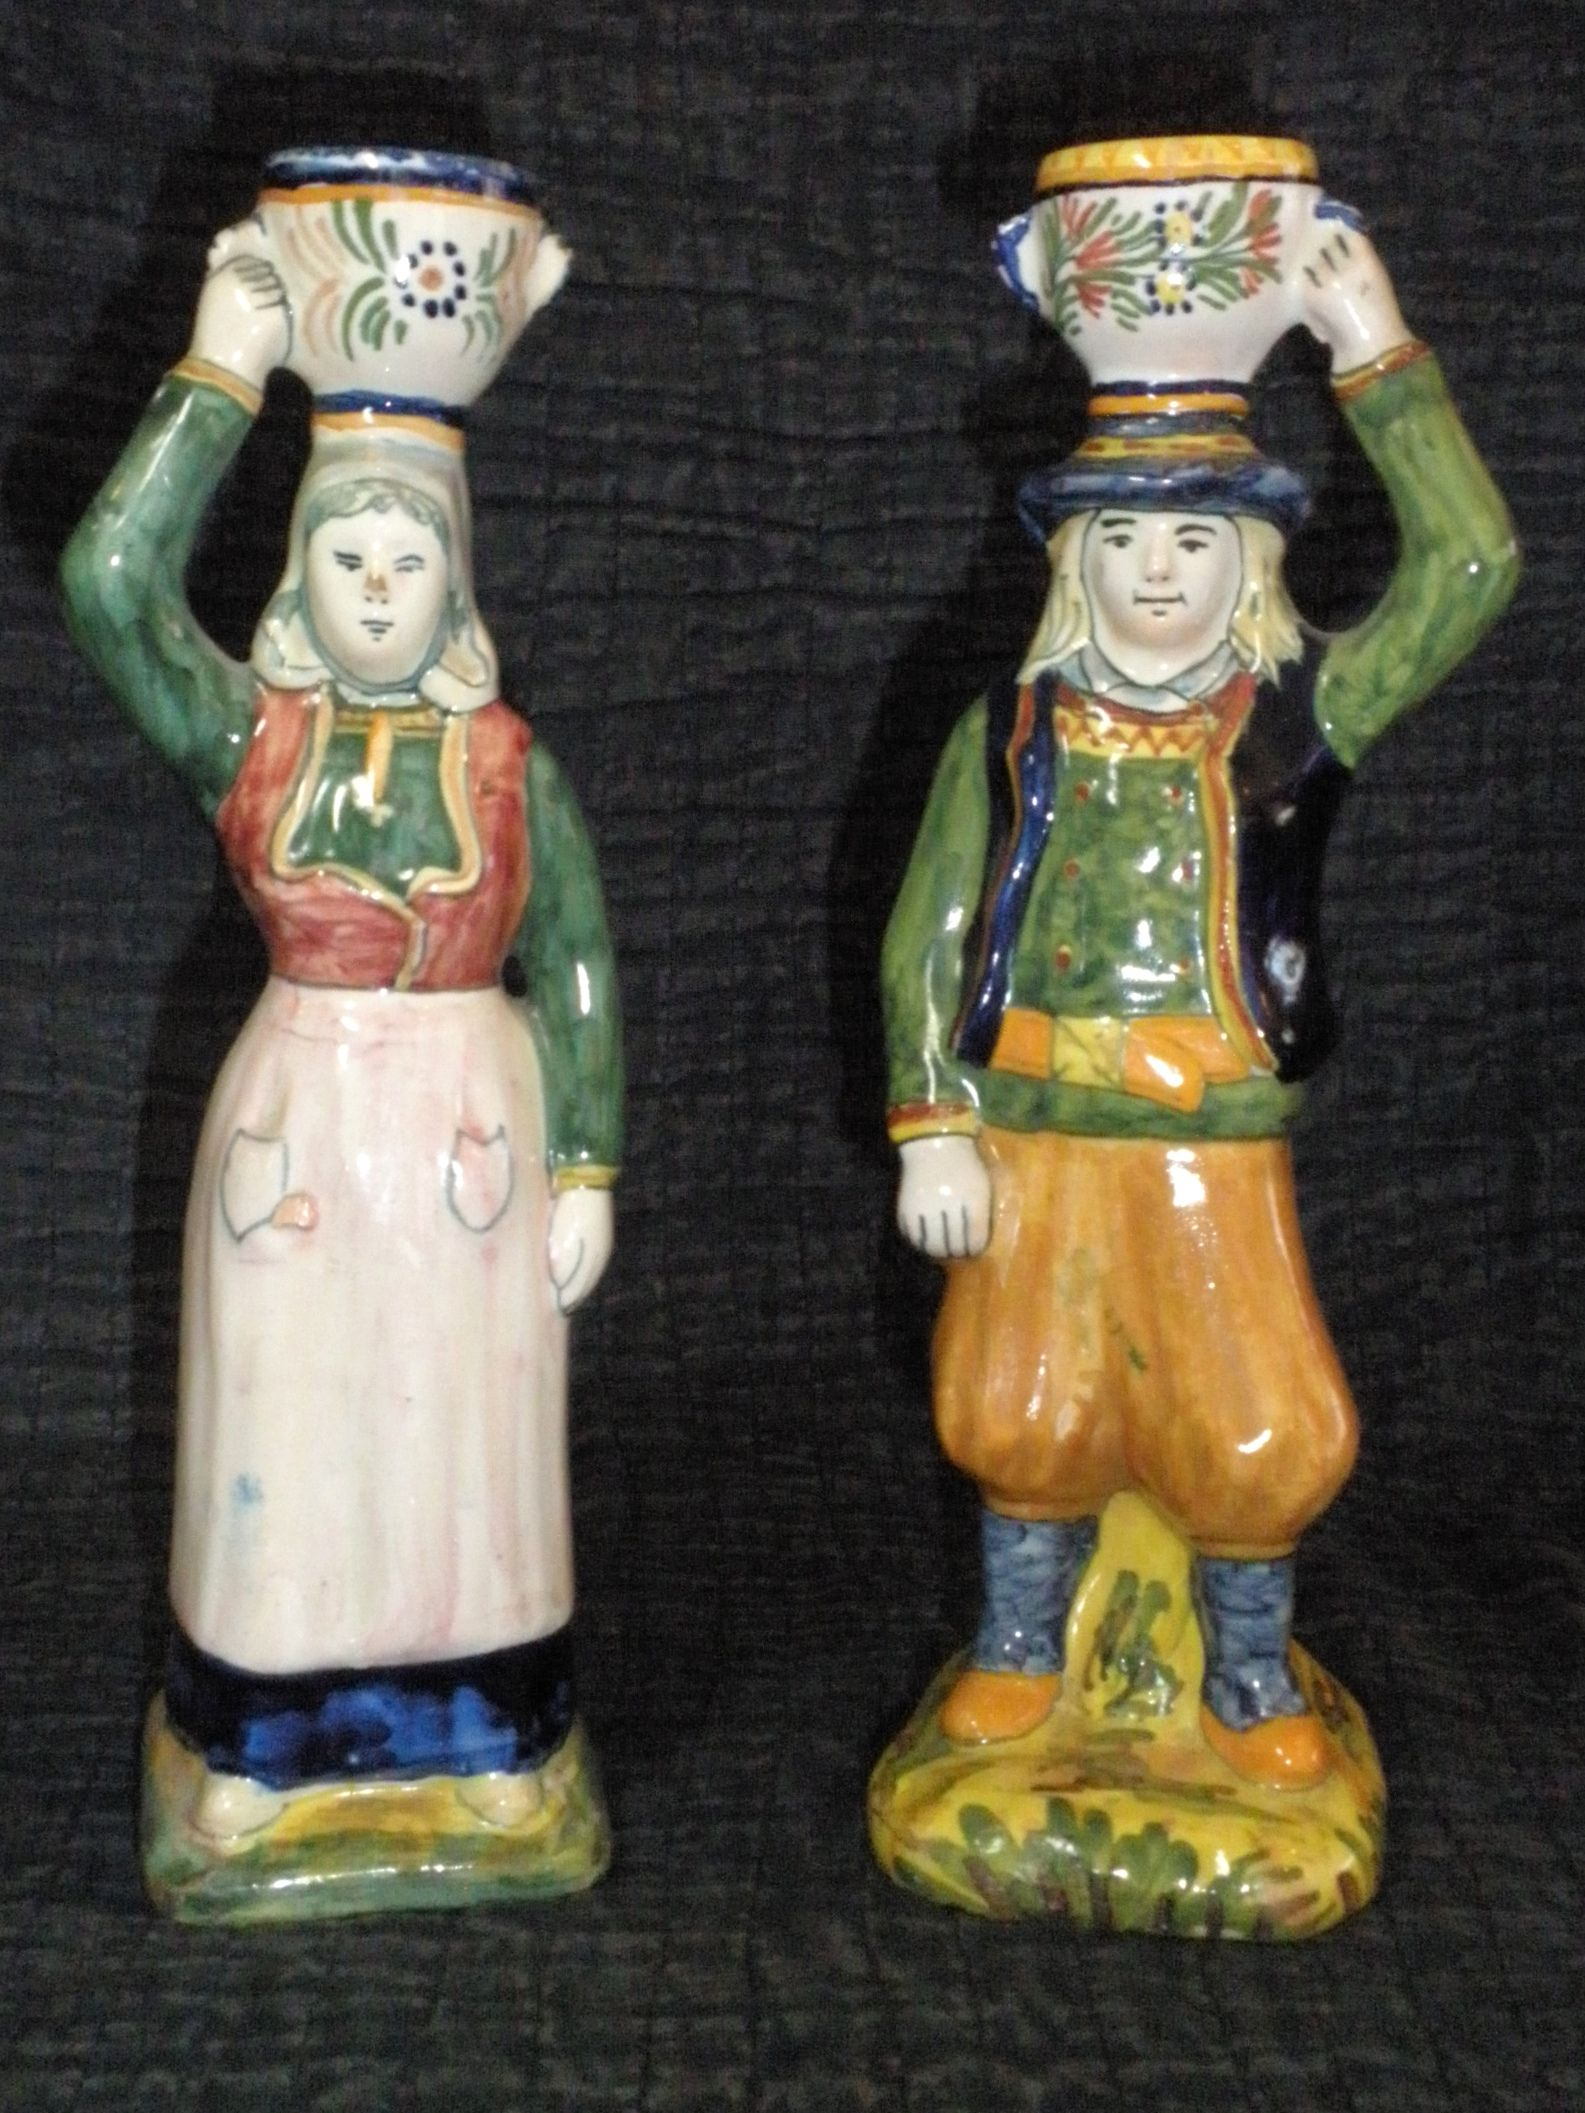 Fabulous Figural Candlesticks From Quimper France Photo Courtesy Countryfrenchpottery Com Faience De Quimper Quimper Bretagne